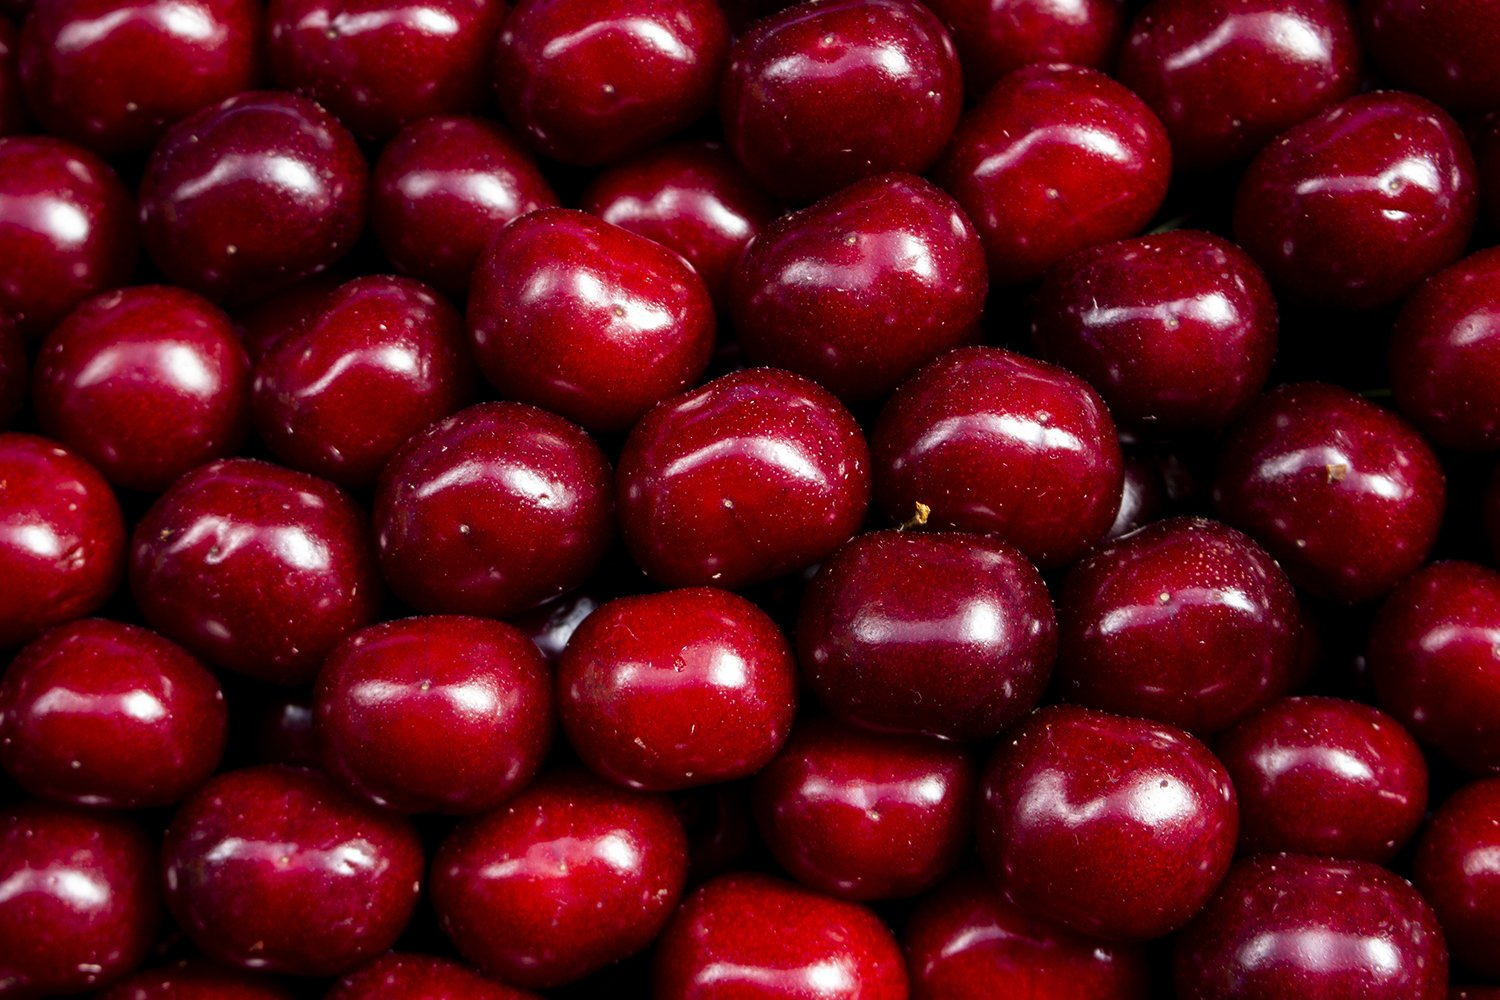 Juicy colored fruits on counter farm market red cherry example image 1